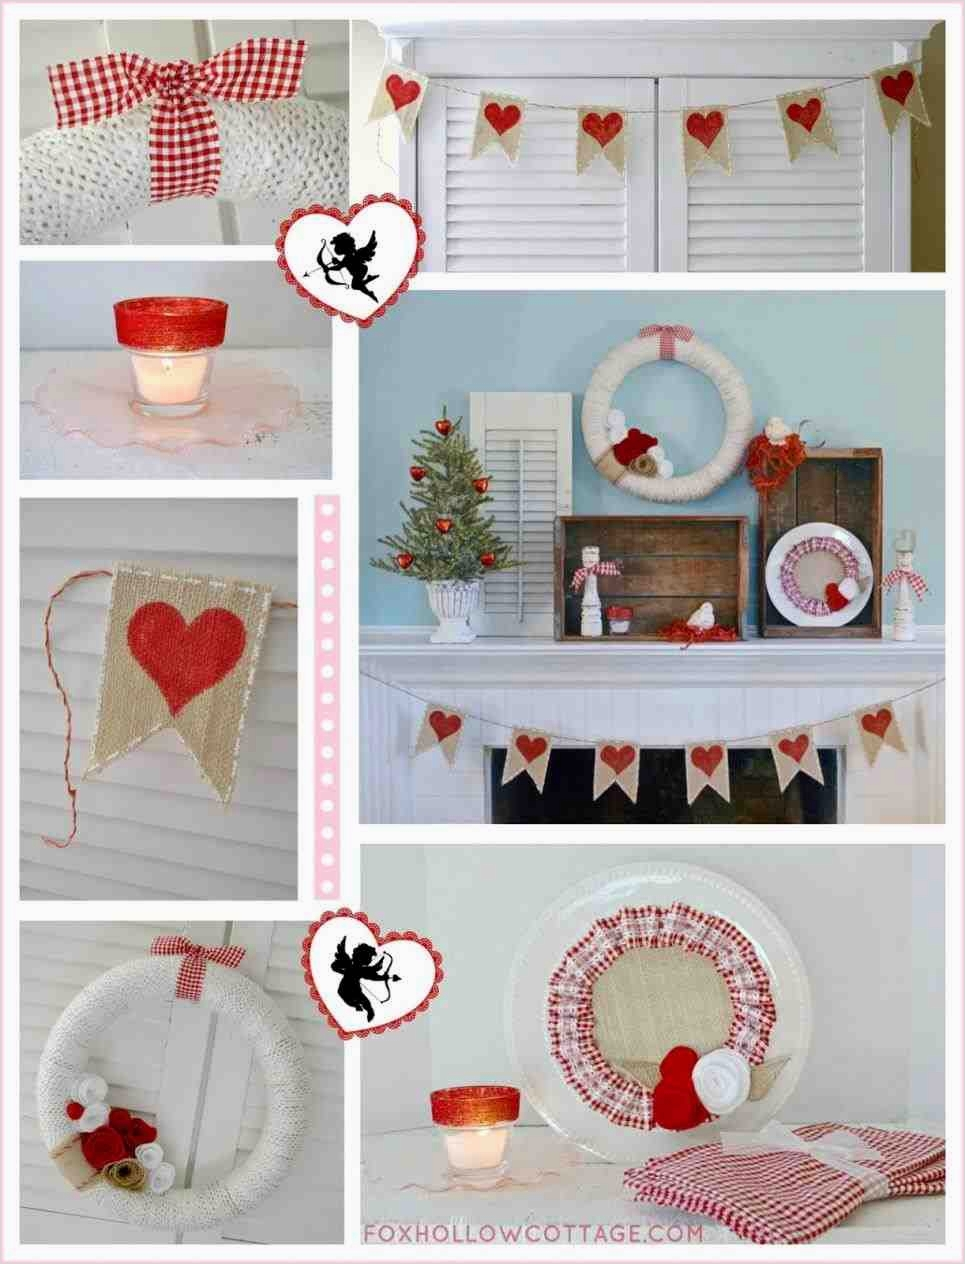 44 Creative Craft Wall Decoration Ideas 88 the Collection Of Ideas Wall Art and Craft Ideas 8